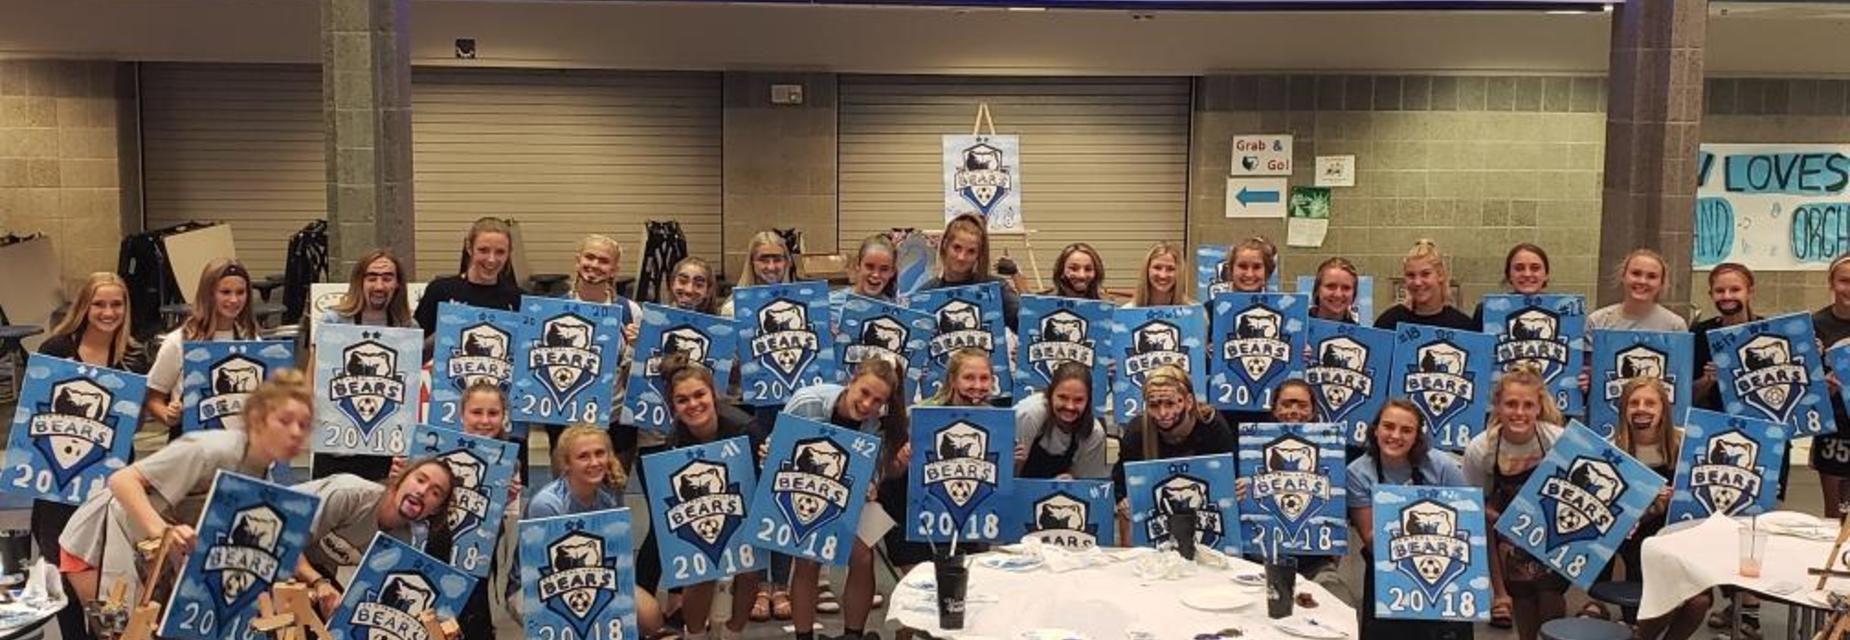 Lady Bears Soccer Team Building with Art